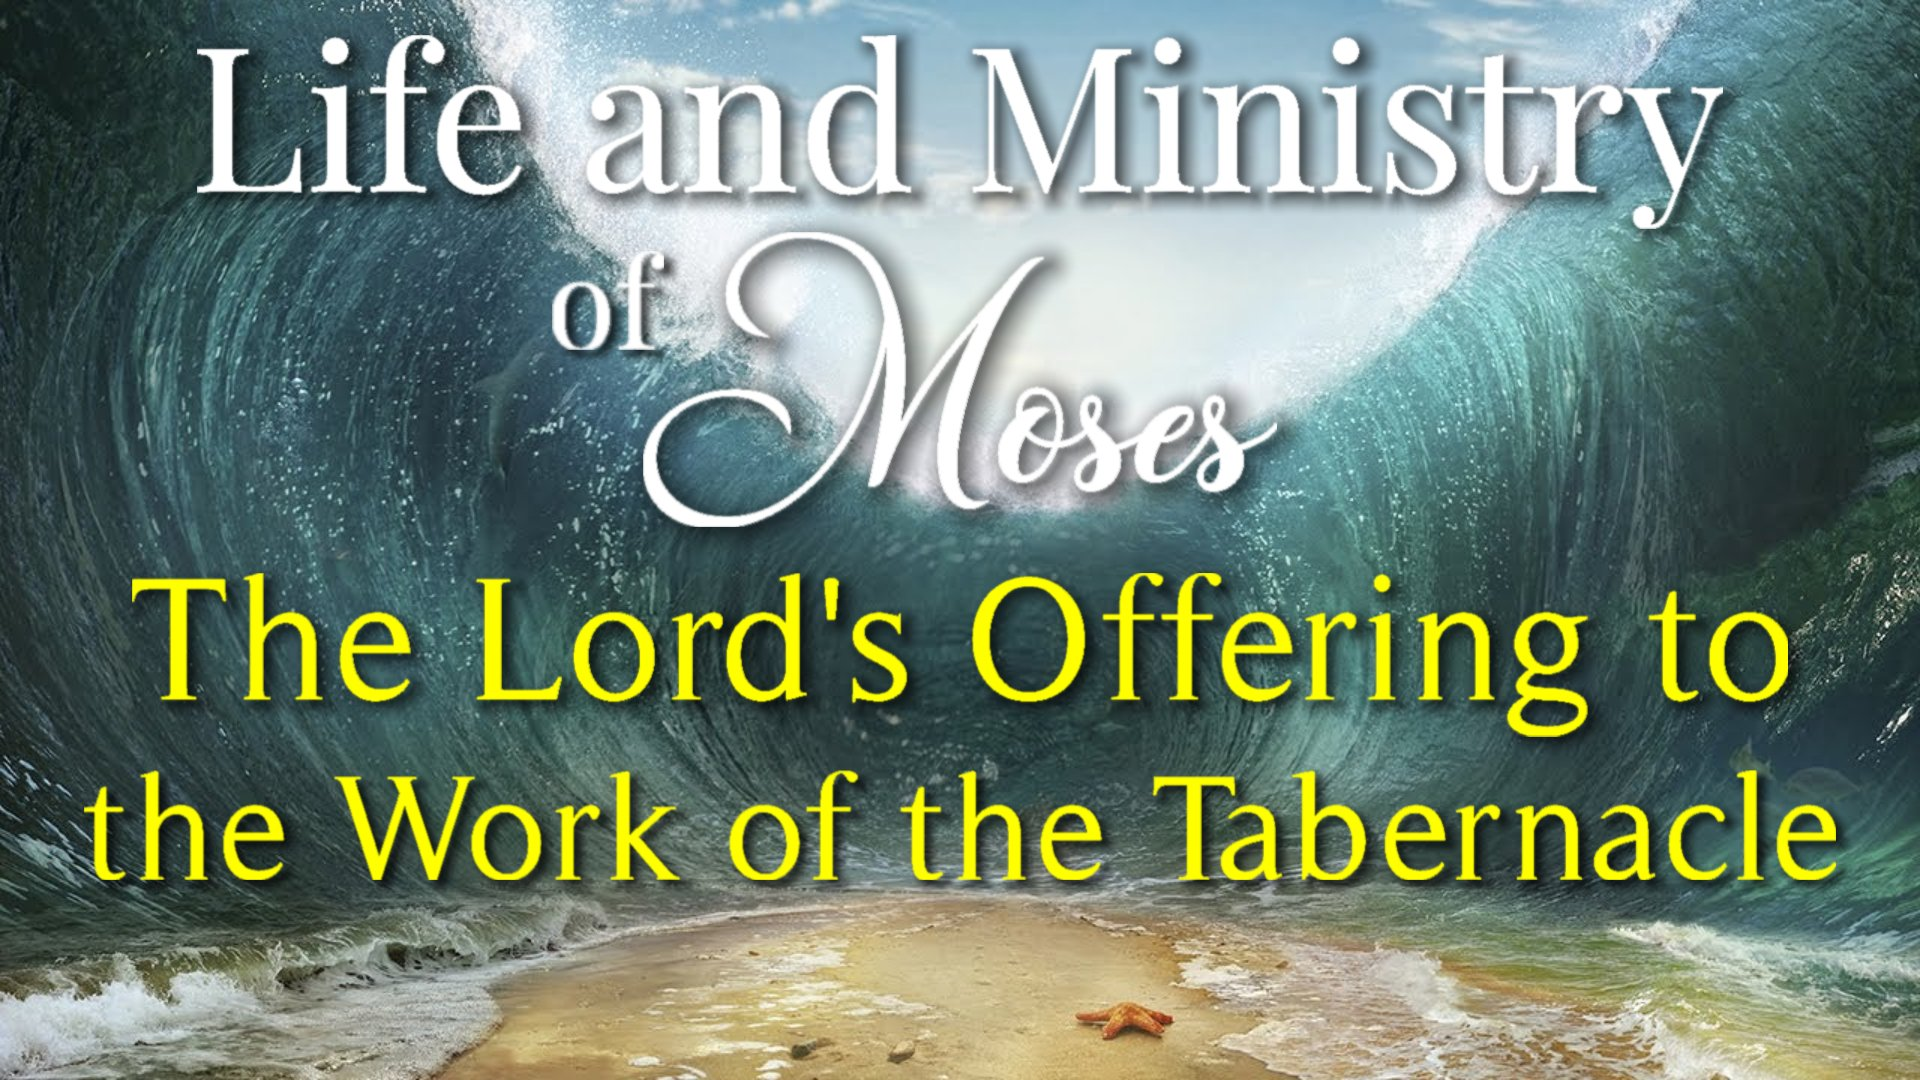 30 The Lord's Offering to the Work of the Tabernacle